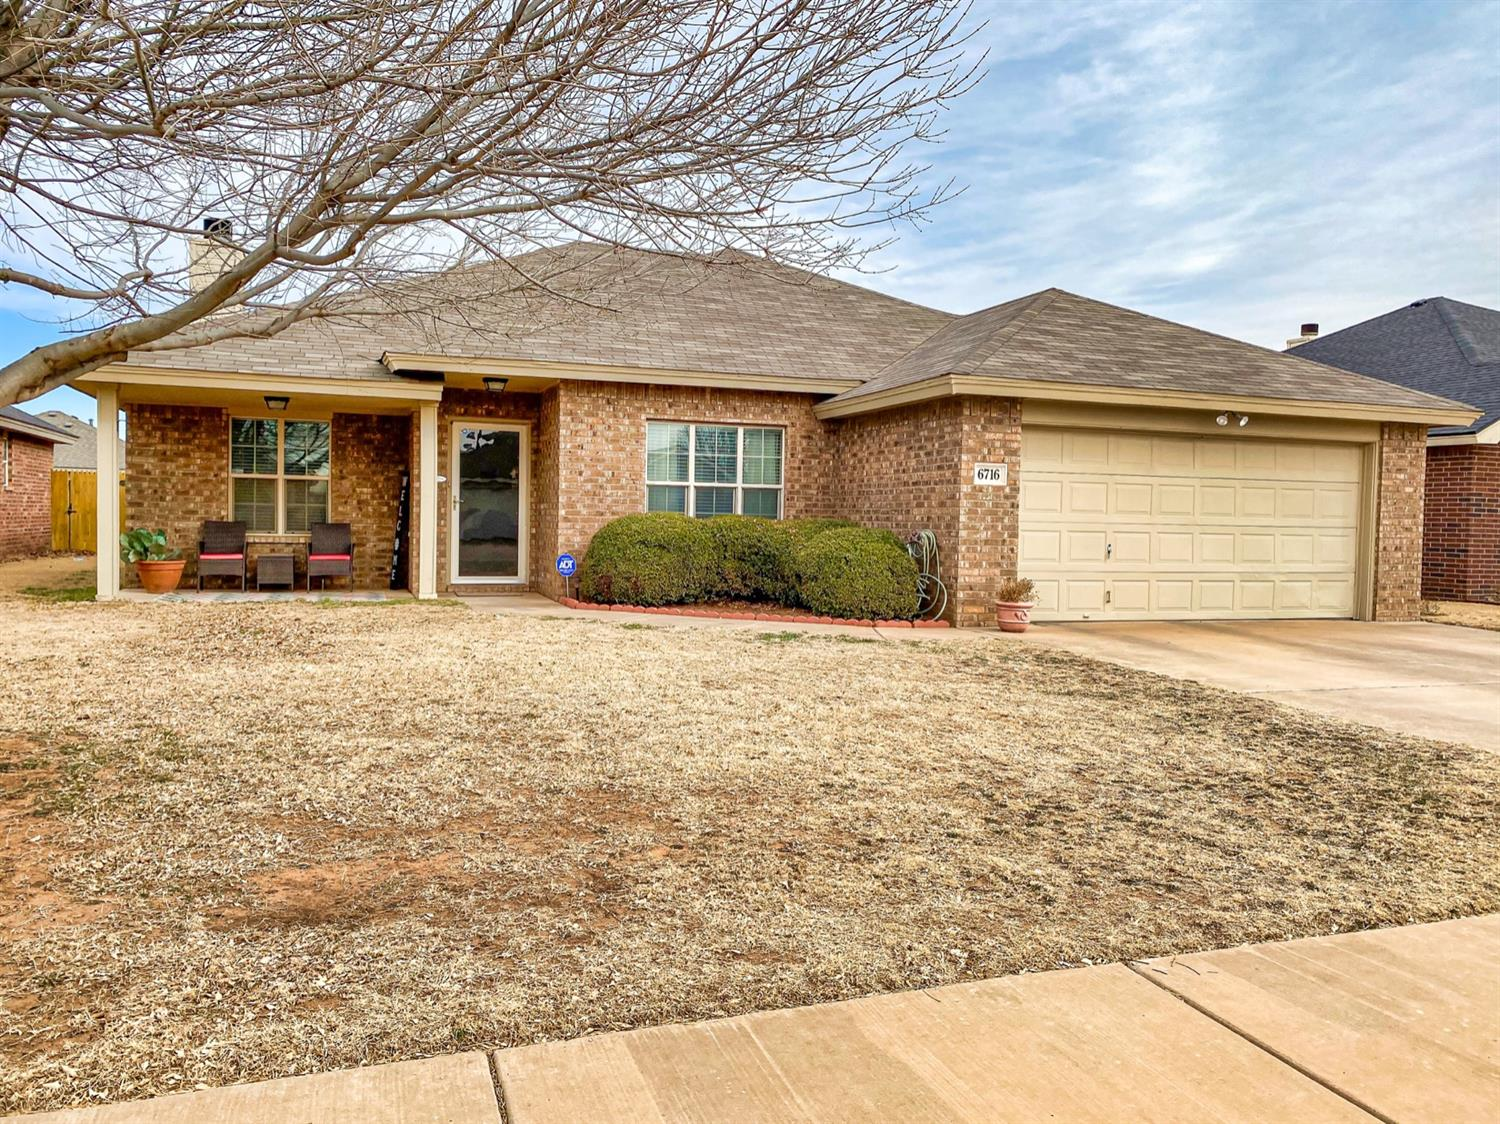 Welcome Home to this doll of a house!!! Complete with 3 bedrooms and 2 baths. This is a David Rogers Home with tons of storage and extra closets! Dining room is separate and could be used as an office. There are 2 covered patios front & back plus a storage shed in backyard! You won't want to miss this one!!!